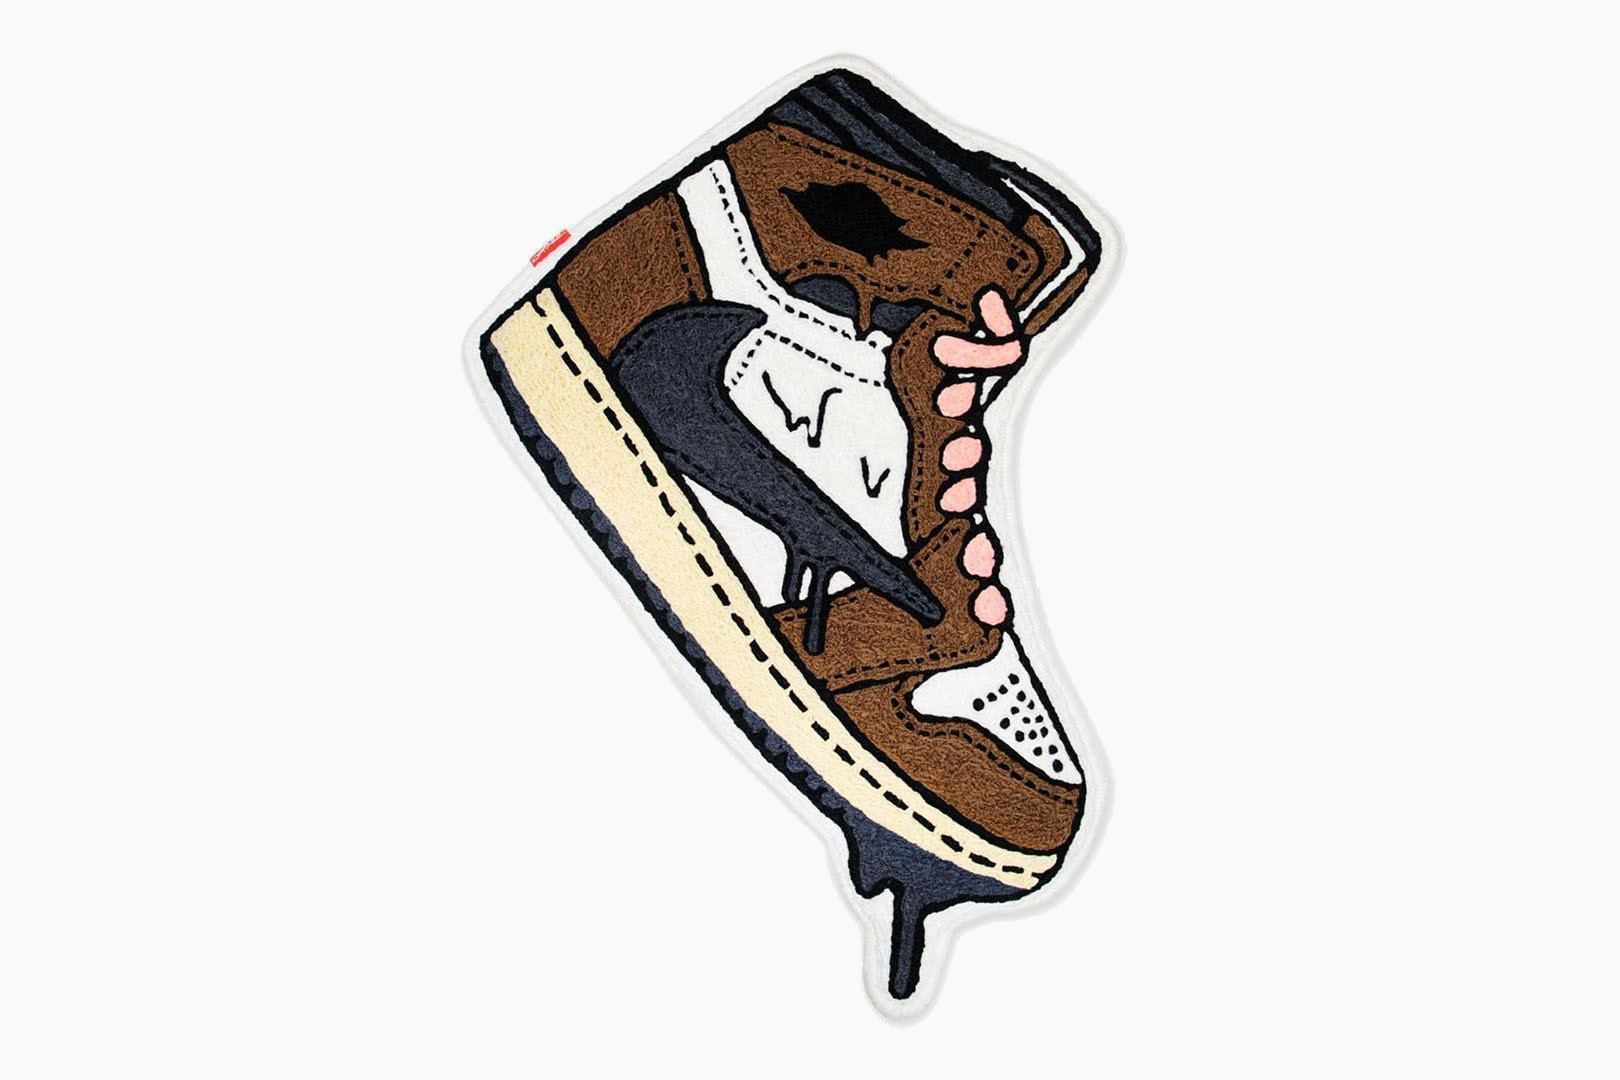 Copaze Travis Scott Air Jordan Car Fresheners & Rugs